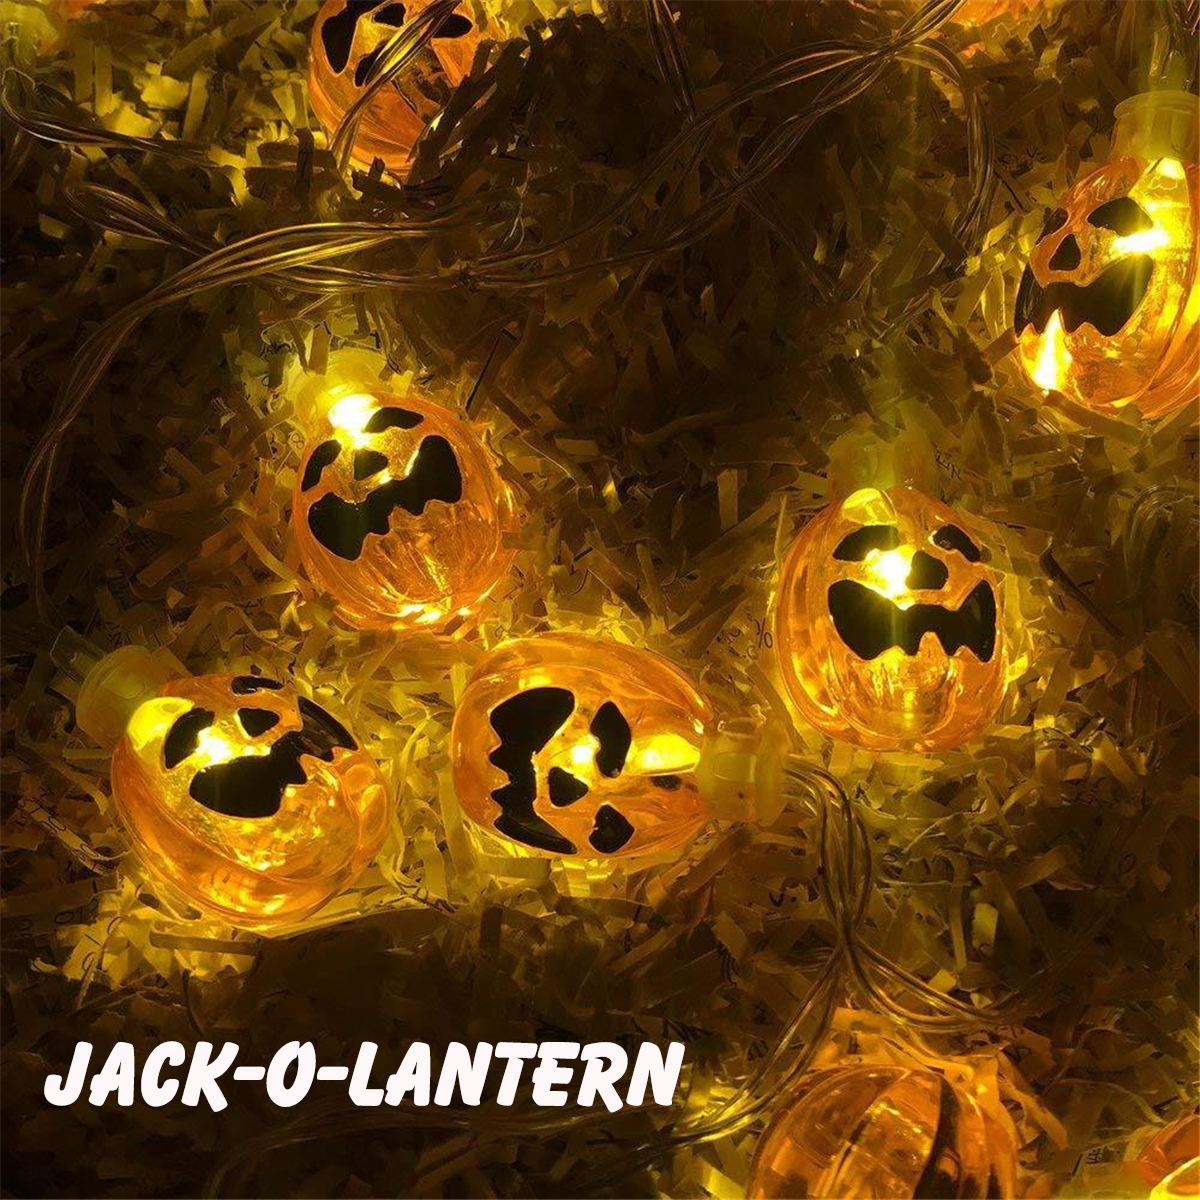 Halloween Party Jack-O-Lantern Light Pumpkin String Light Home Decor